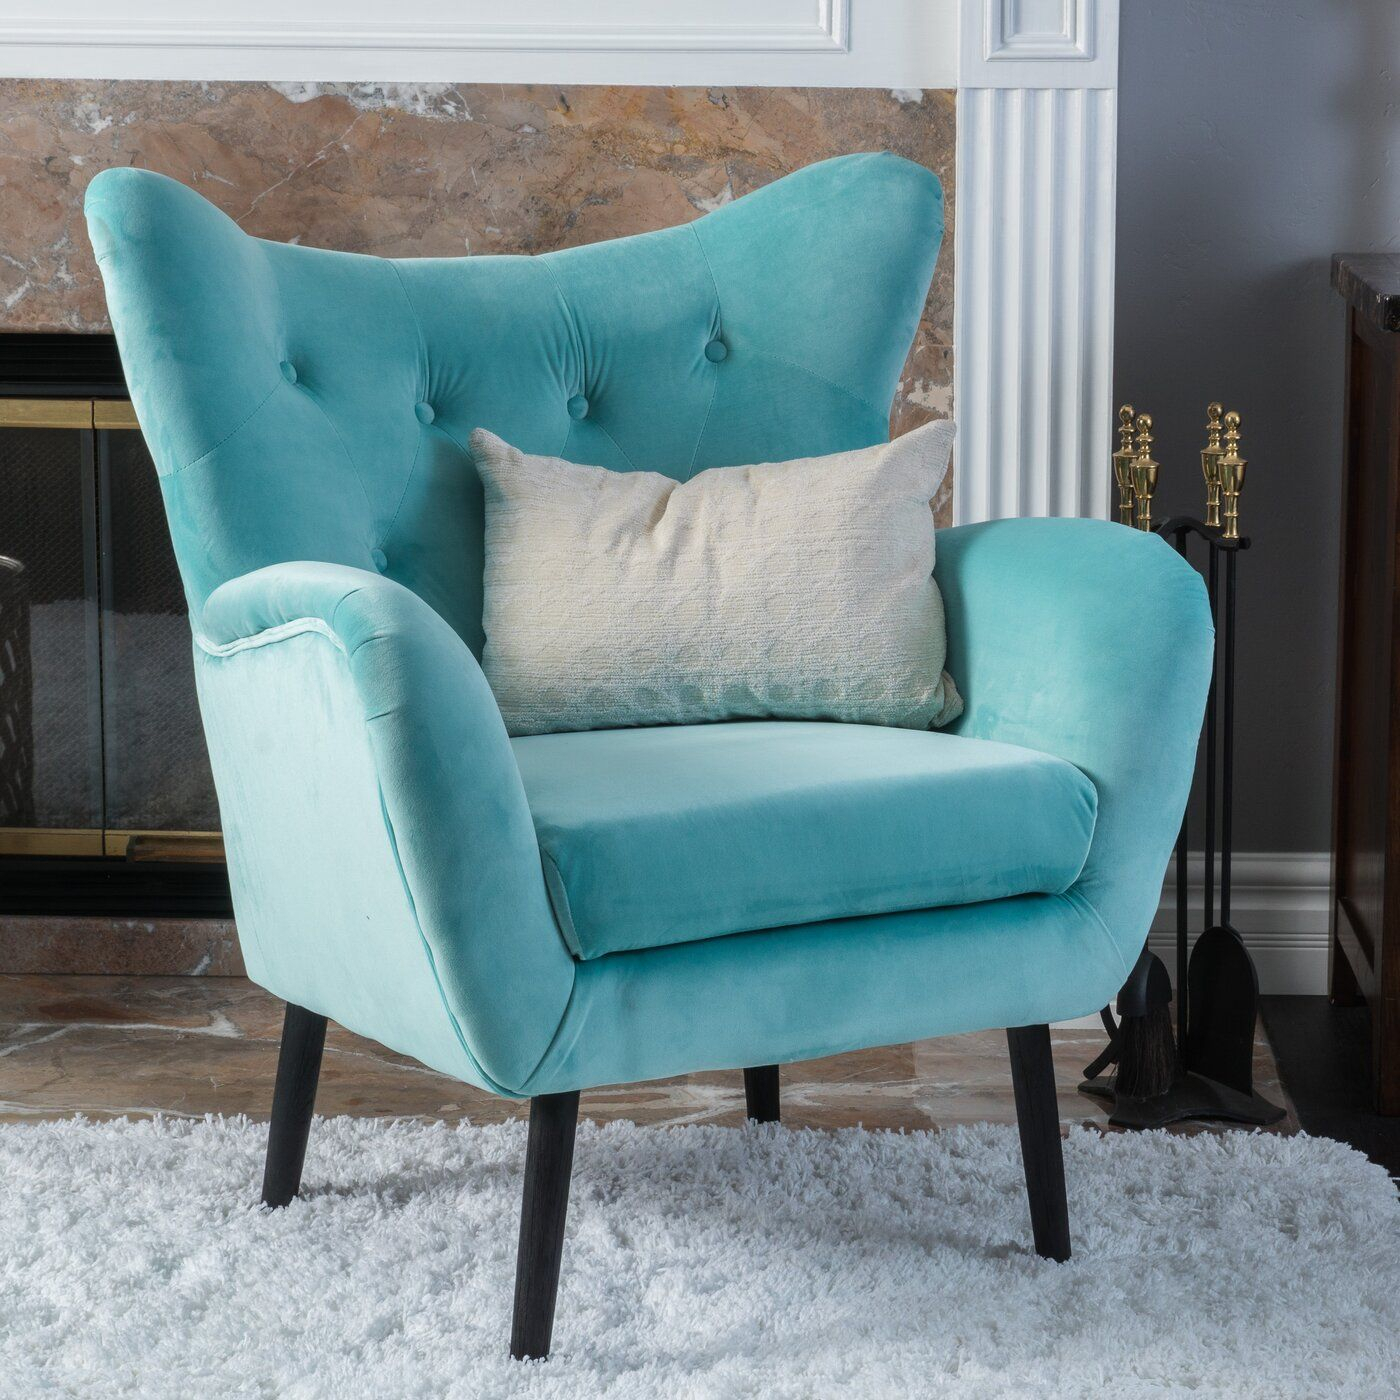 Bouck 21'' Wingback Chair | Blue Velvet Armchair, Noble Throughout Bouck Wingback Chairs (View 5 of 15)